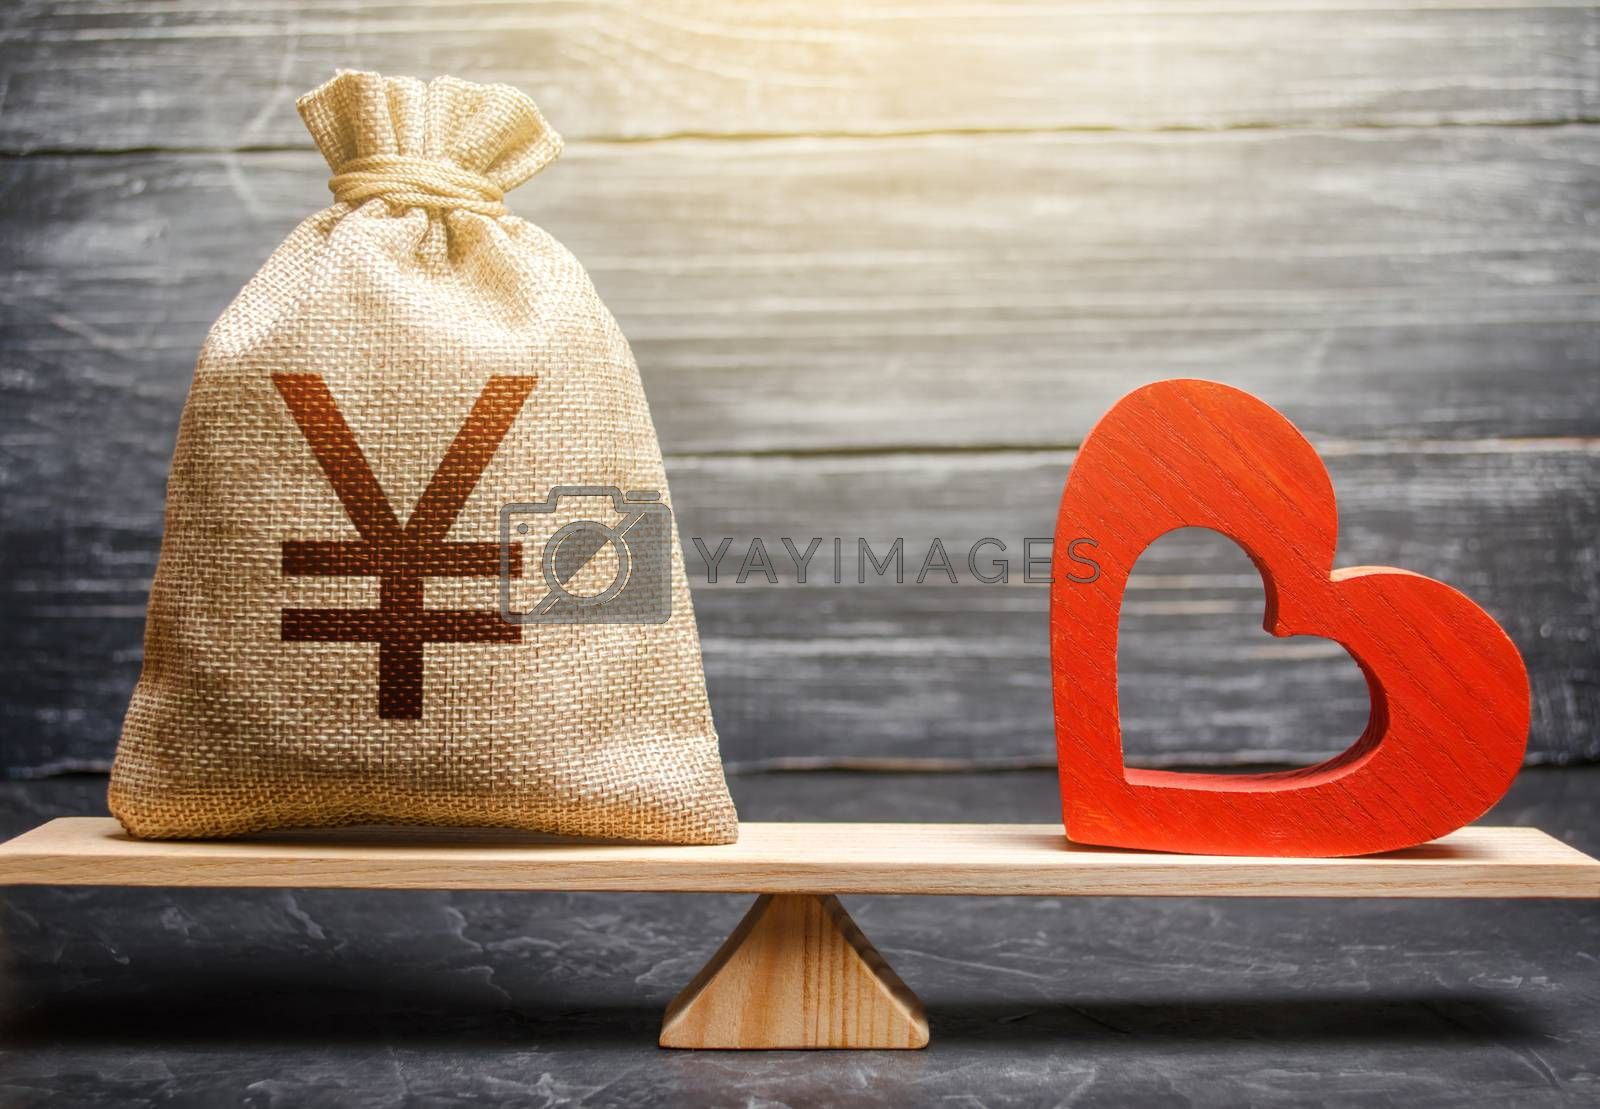 Yen Yuan money bag and red heart on scales. Health life insurance financing concept. Subsidies. Reforming and preparing for new challenges. Support and life quality improvement. Funding healthcare.